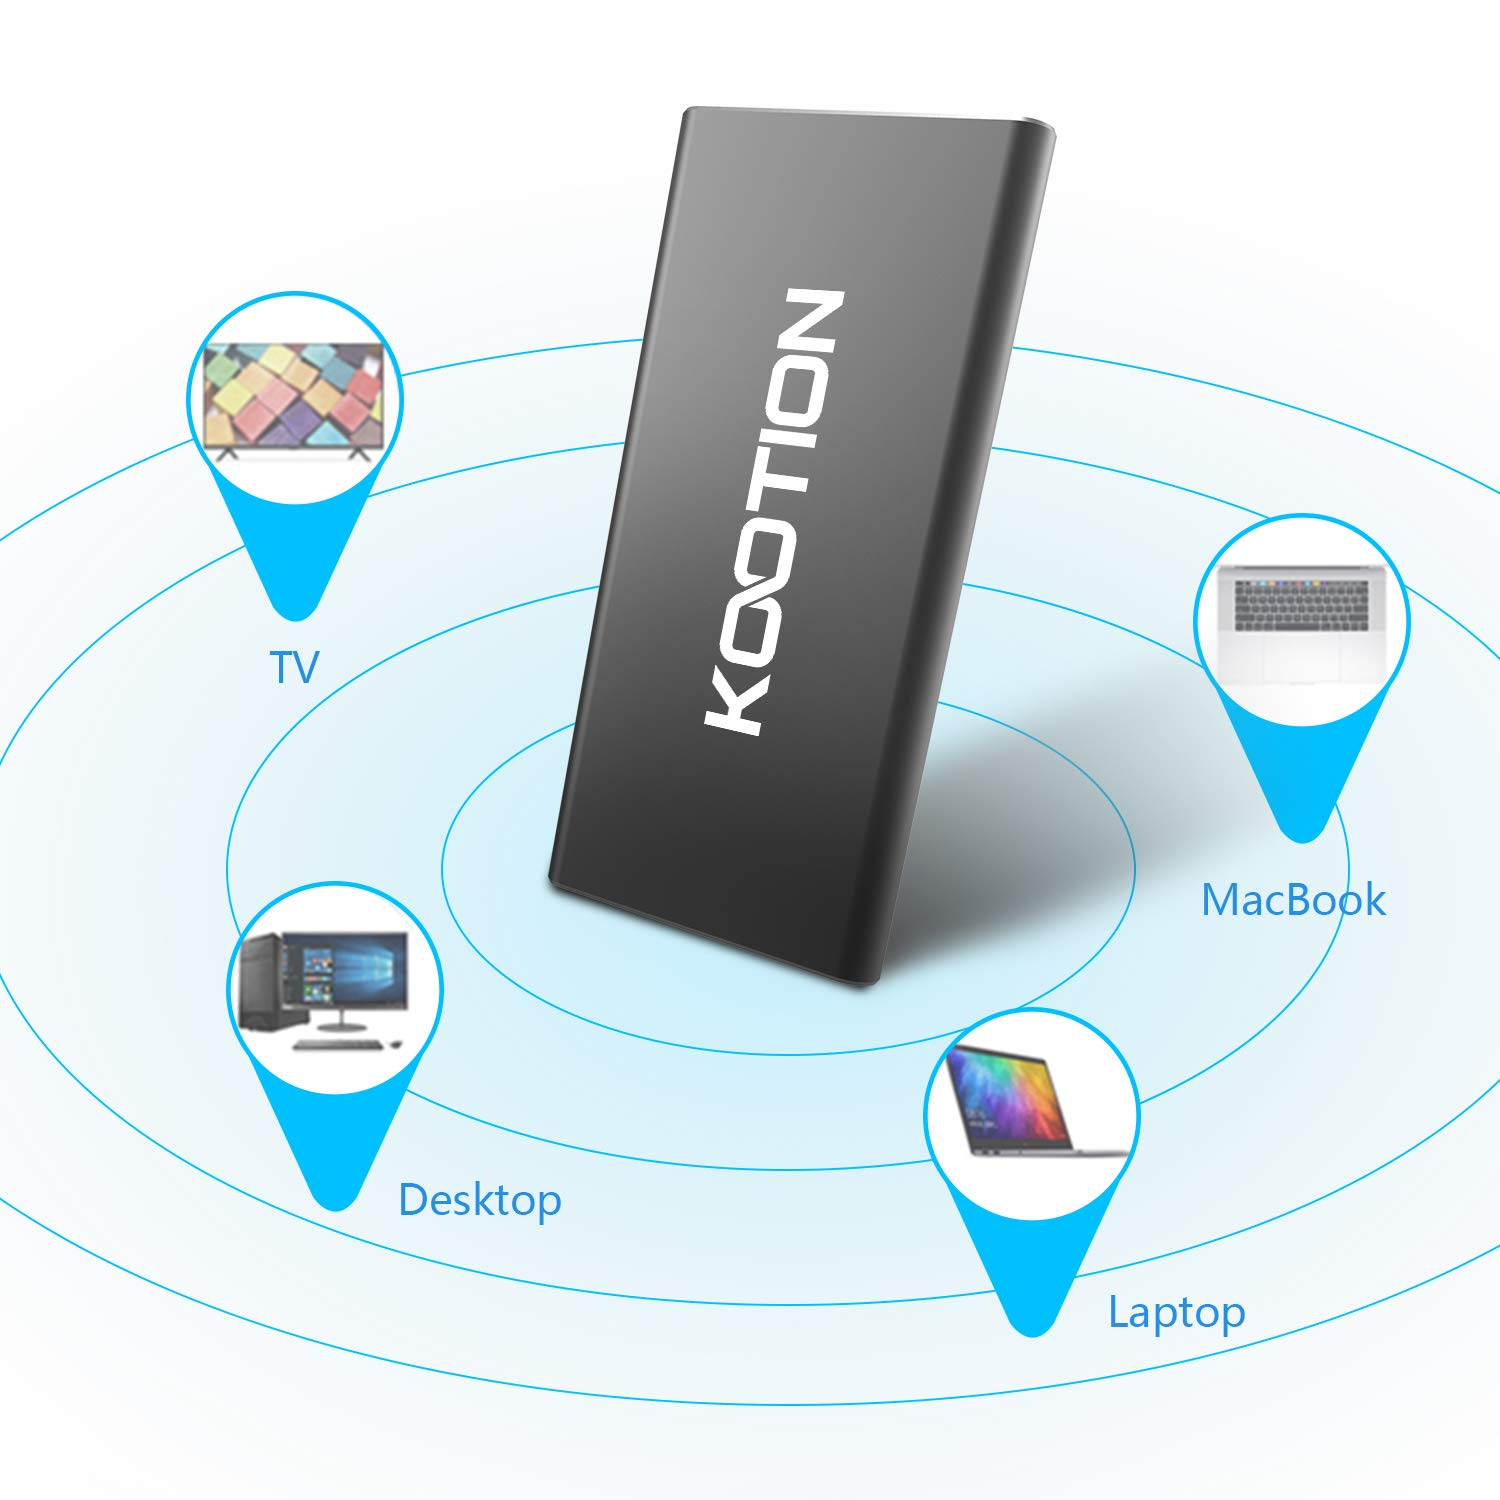 KOOTION 120GB Portable External SSD USB 3.0 High Speed Read & Write up to 400MB/s&300MB/s External Storage Ultra-Slim Solid State Drive for PC, Desktop, Laptop, MacBook by KOOTION (Image #5)